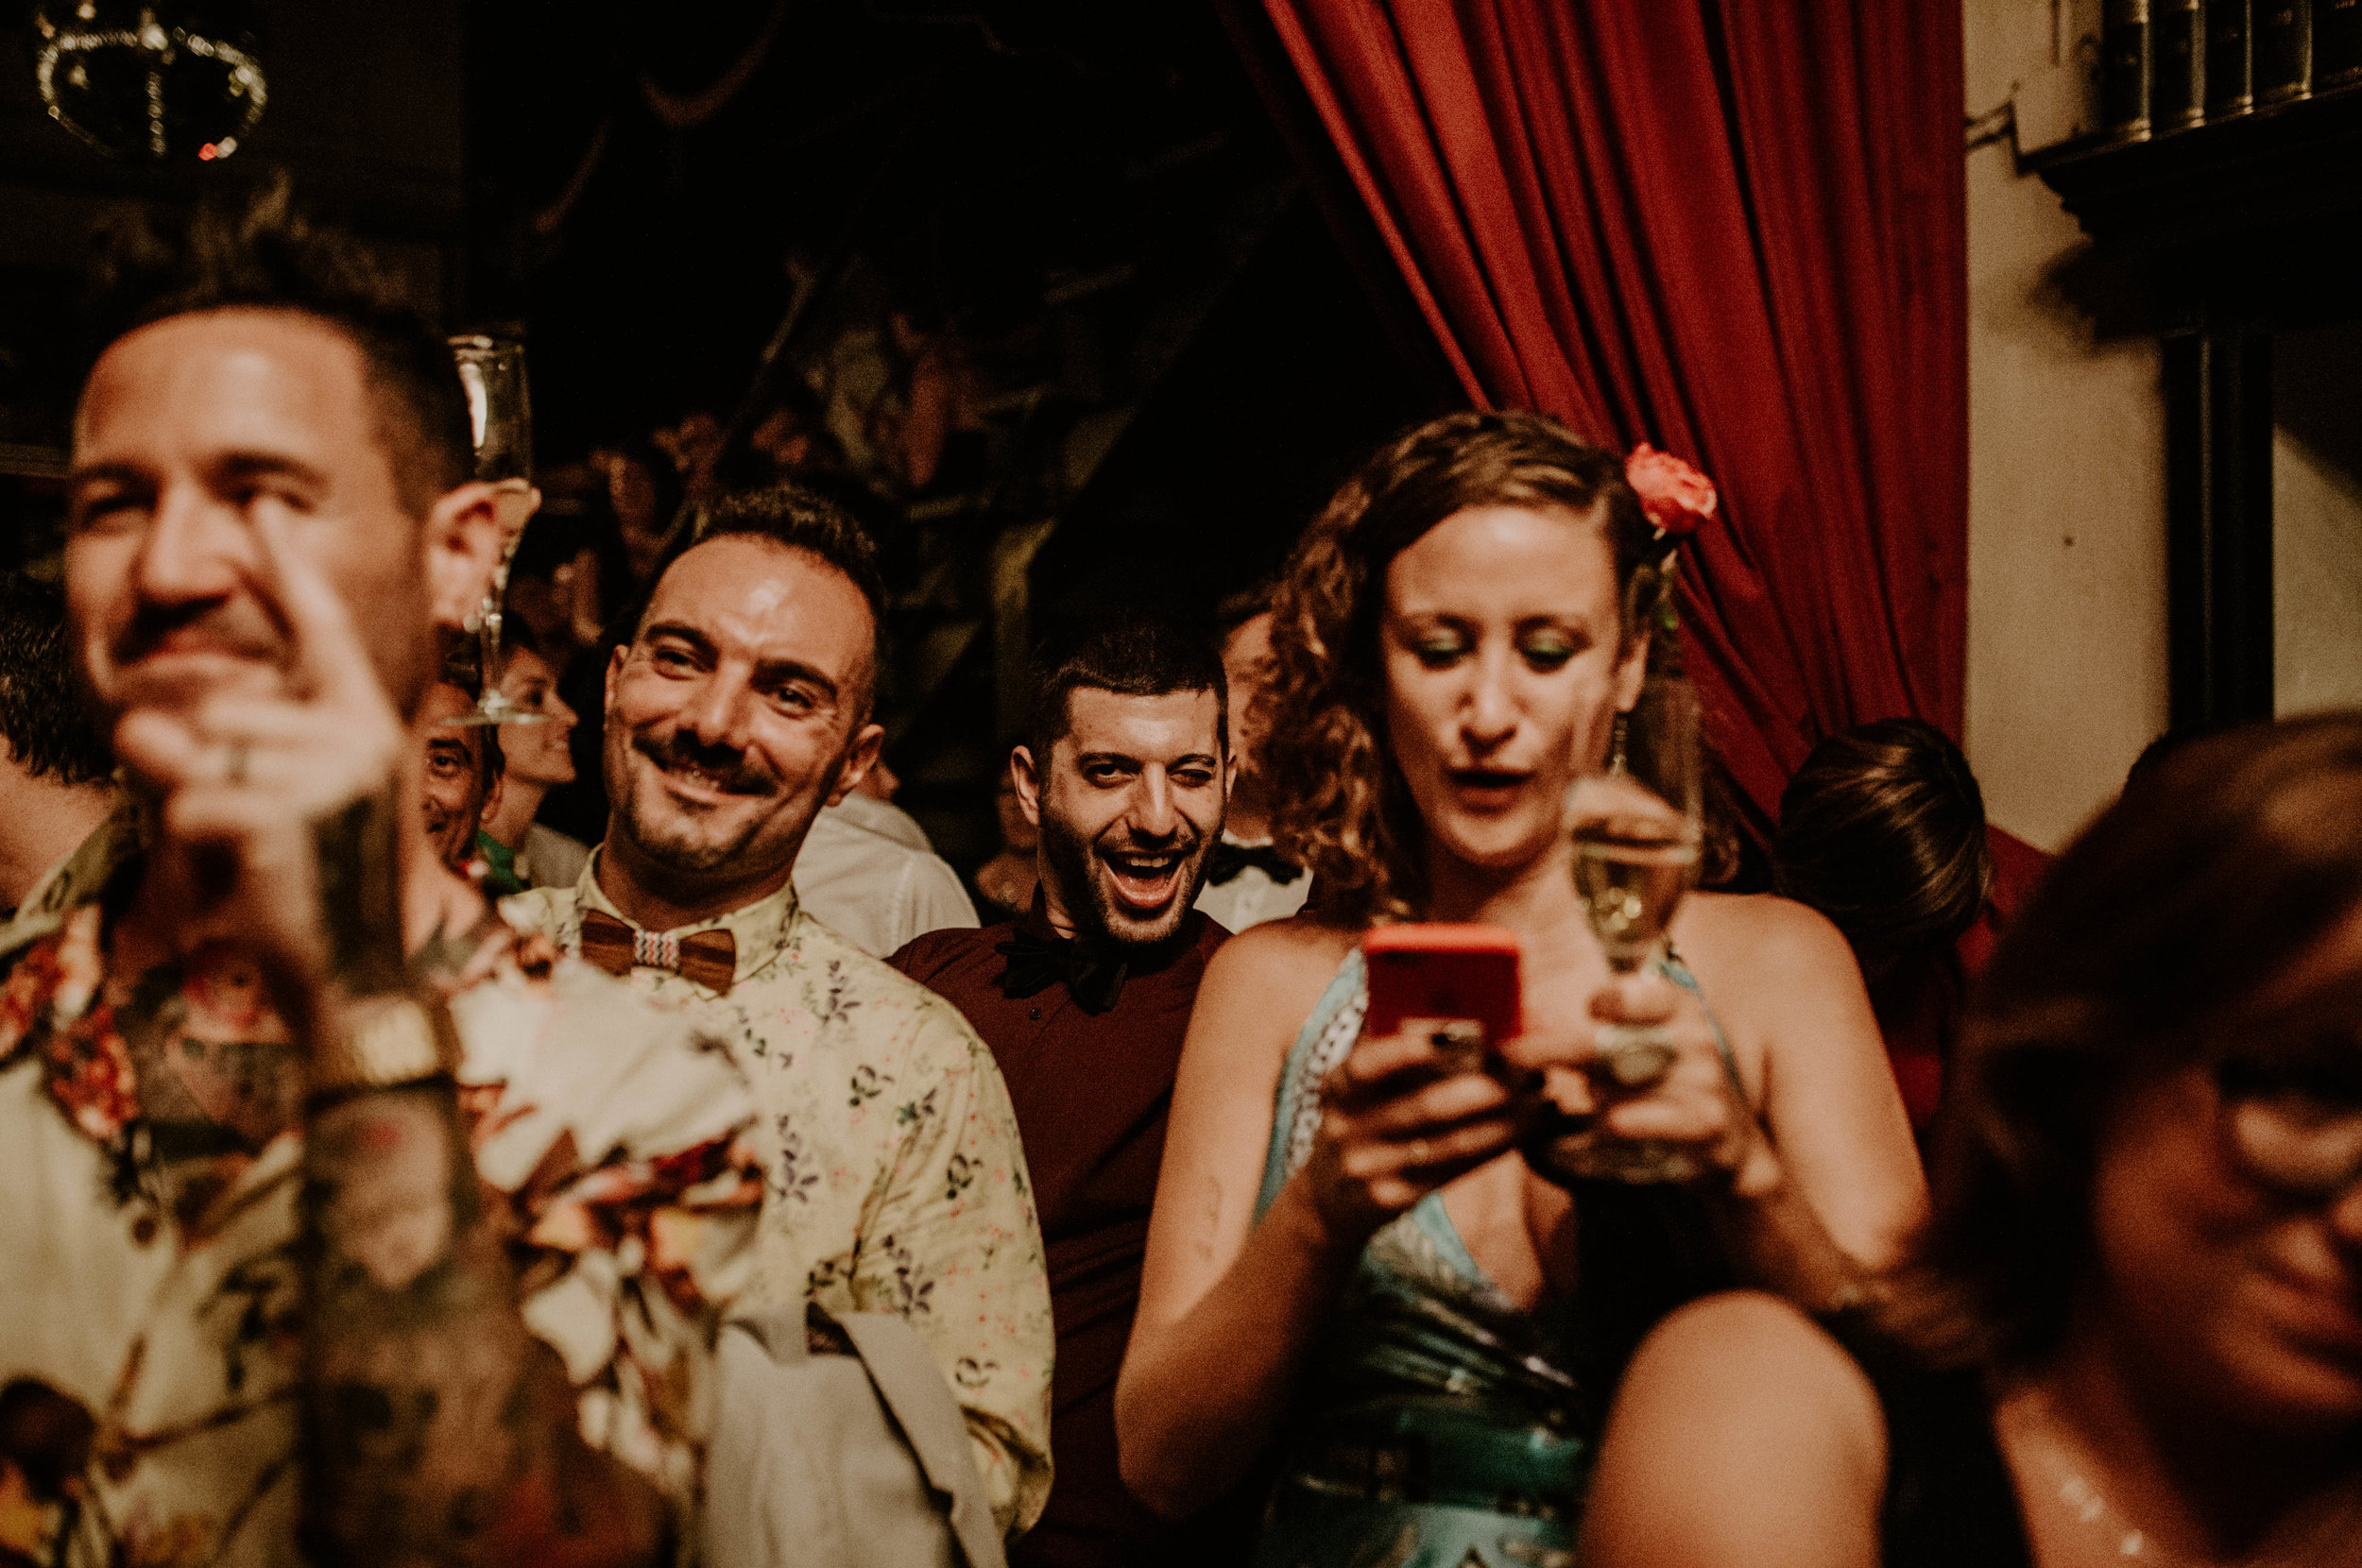 thenortherngirlphotography_bodasindustriales_bodasdiferentes_weddingphotographer_spanishphotographer_spanisgweddingphotographer_happyendings_mercantic_elsiglomercantic_antichrist_love_neon_weddingtattoo_CYNTHIAMANOLO-853.jpg